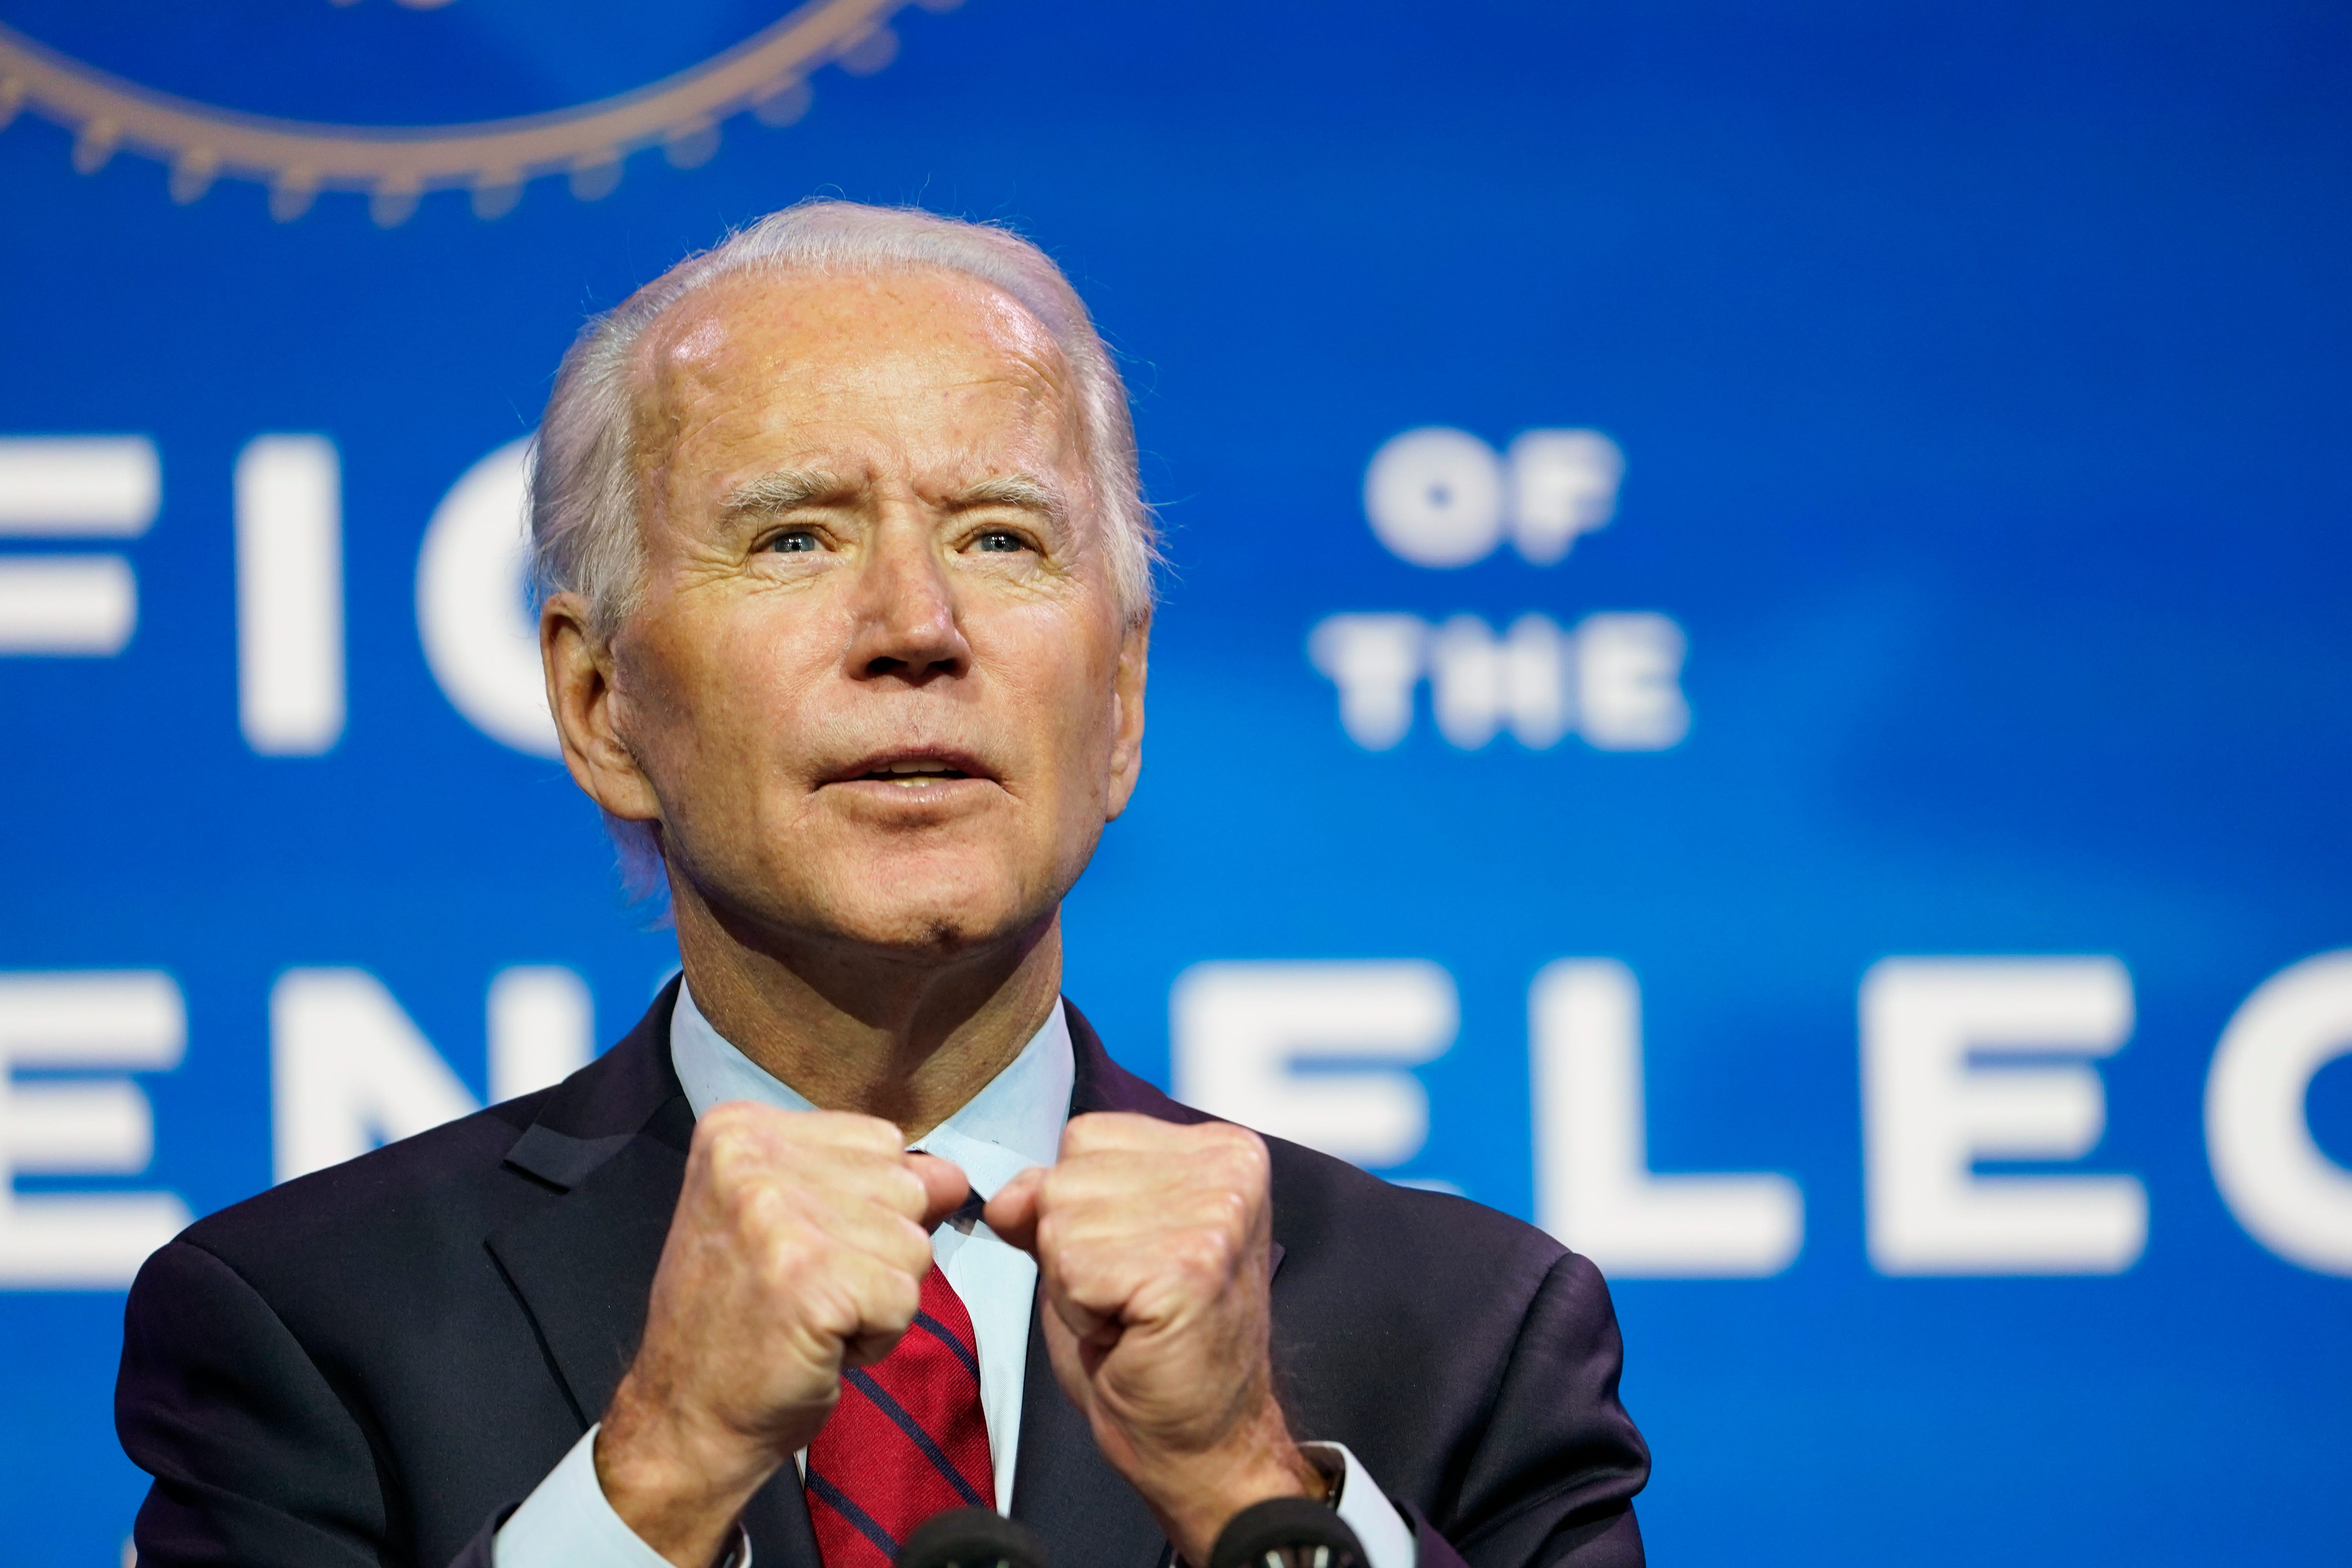 Joe Biden to get  presidential escort  to White House, virtual parade instead of traditional inaugural festivities